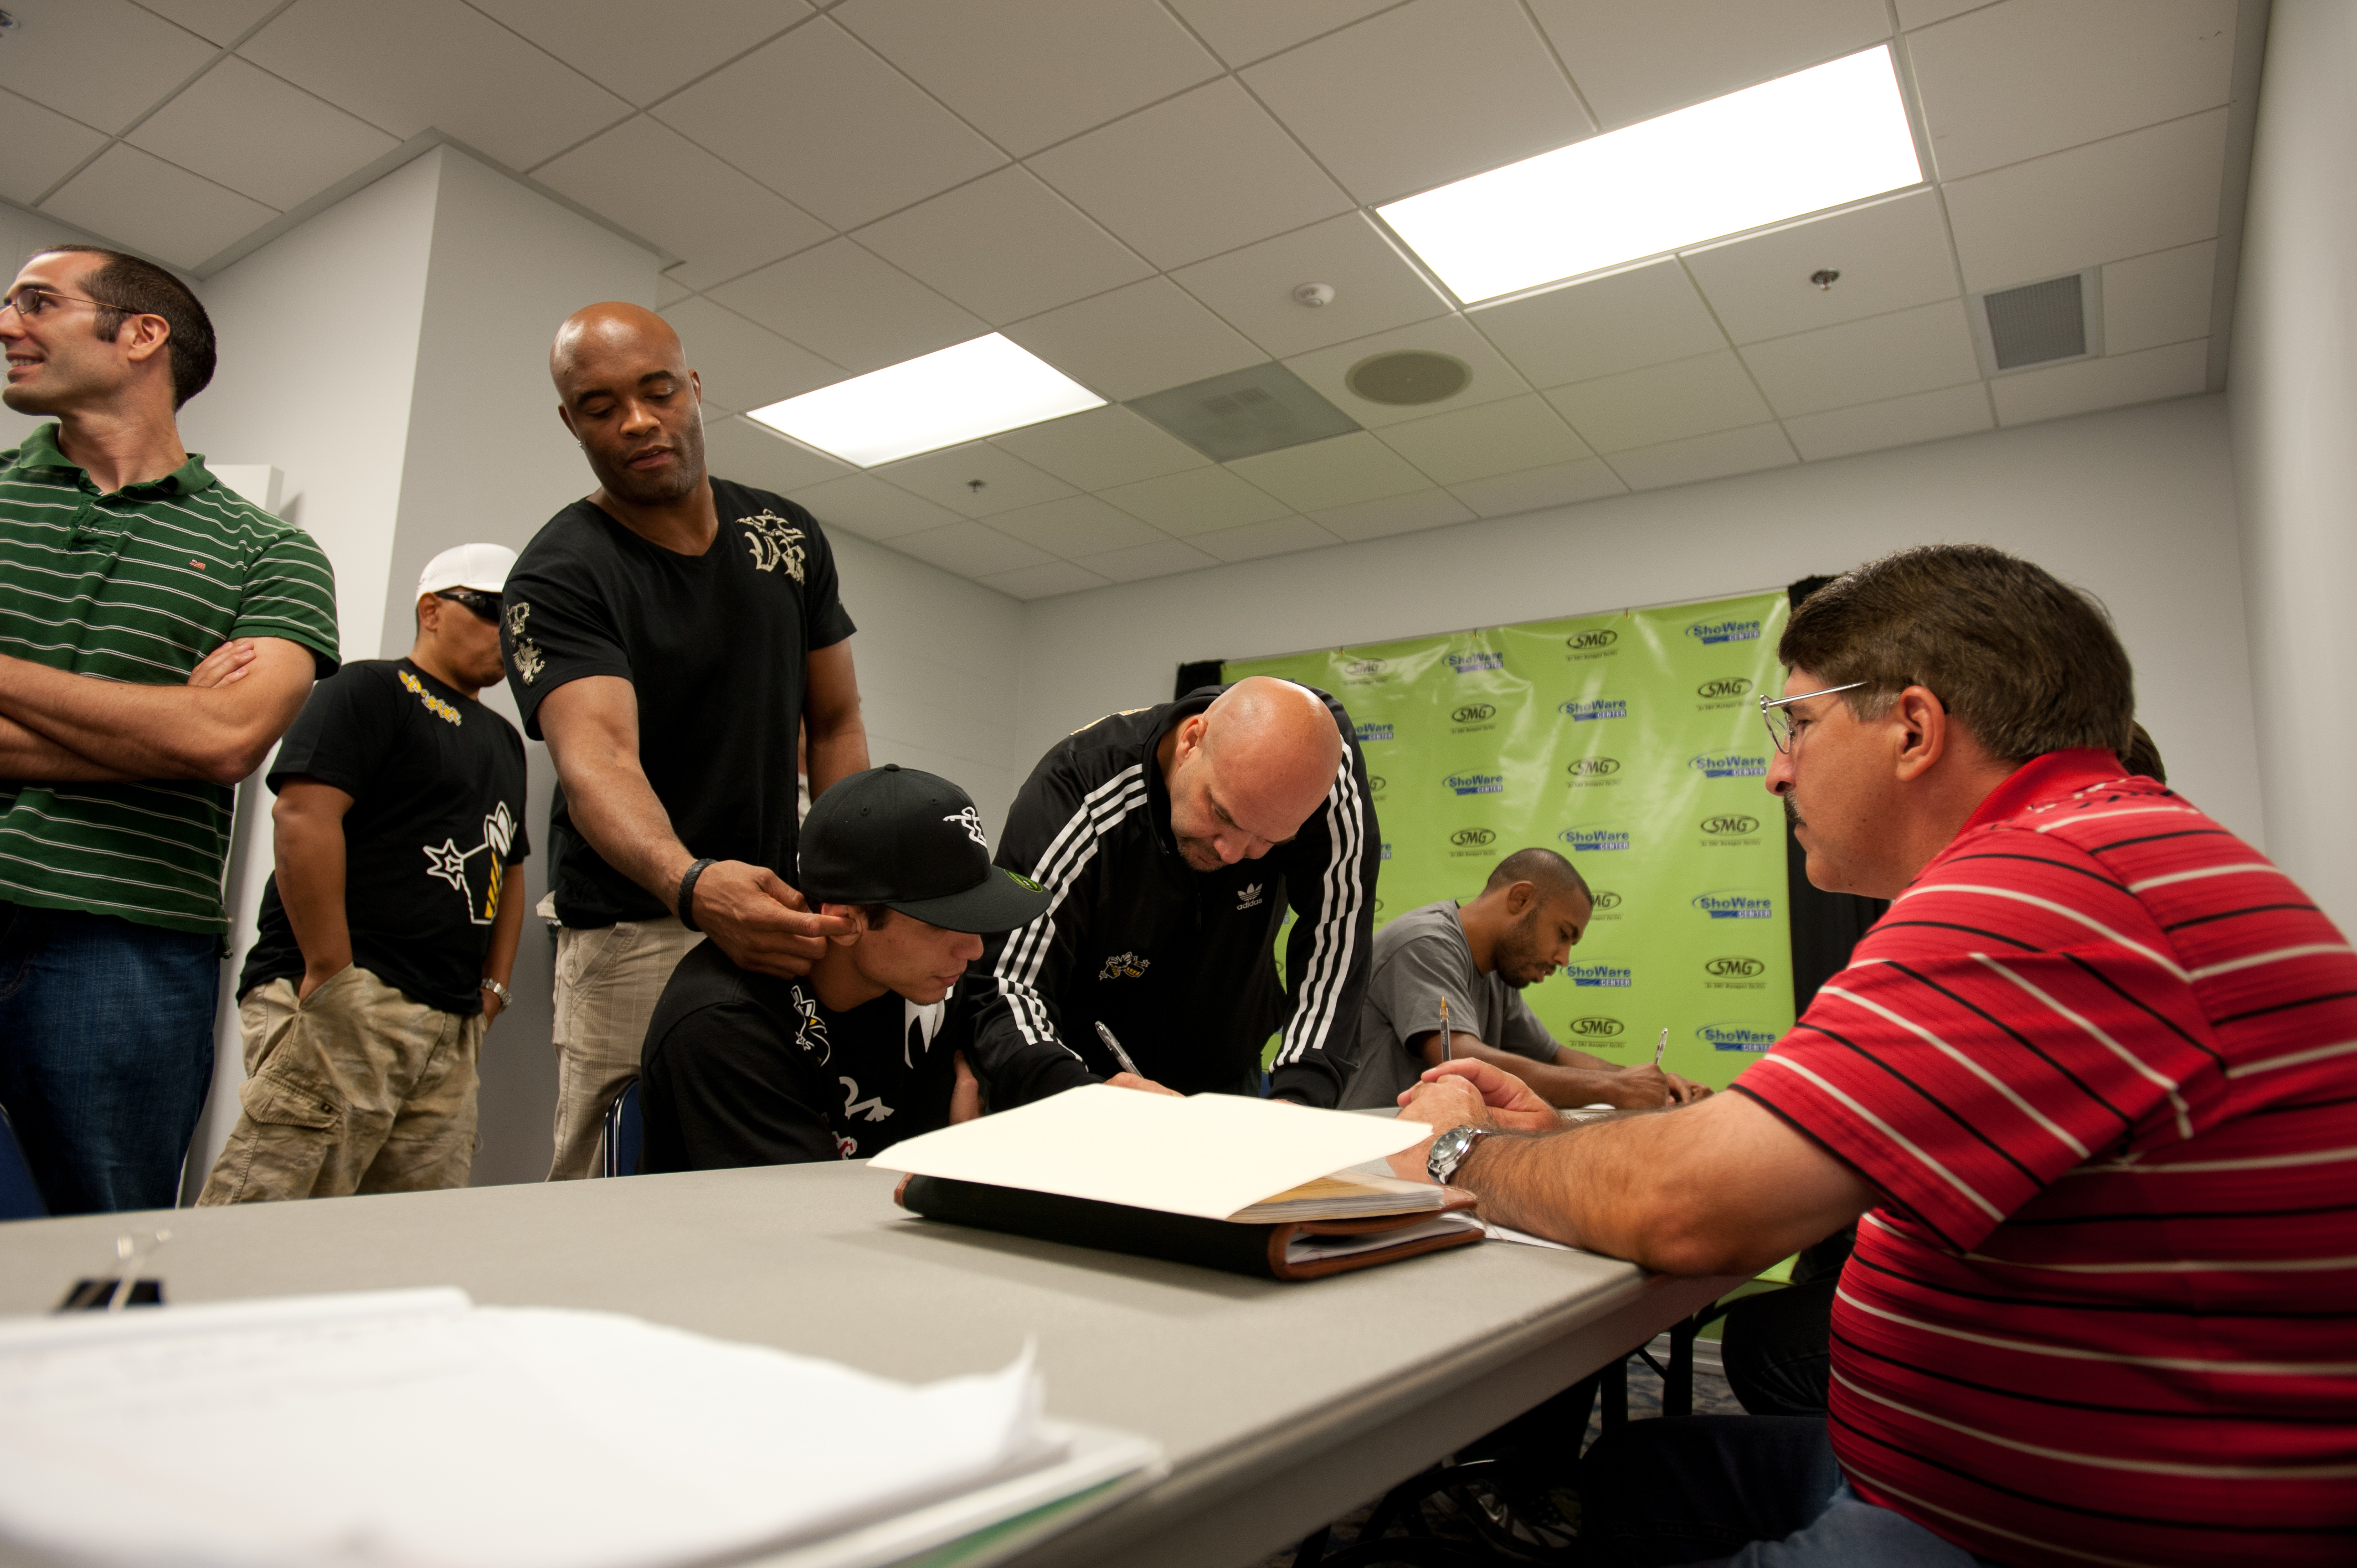 Anderson Silva at sign-in.